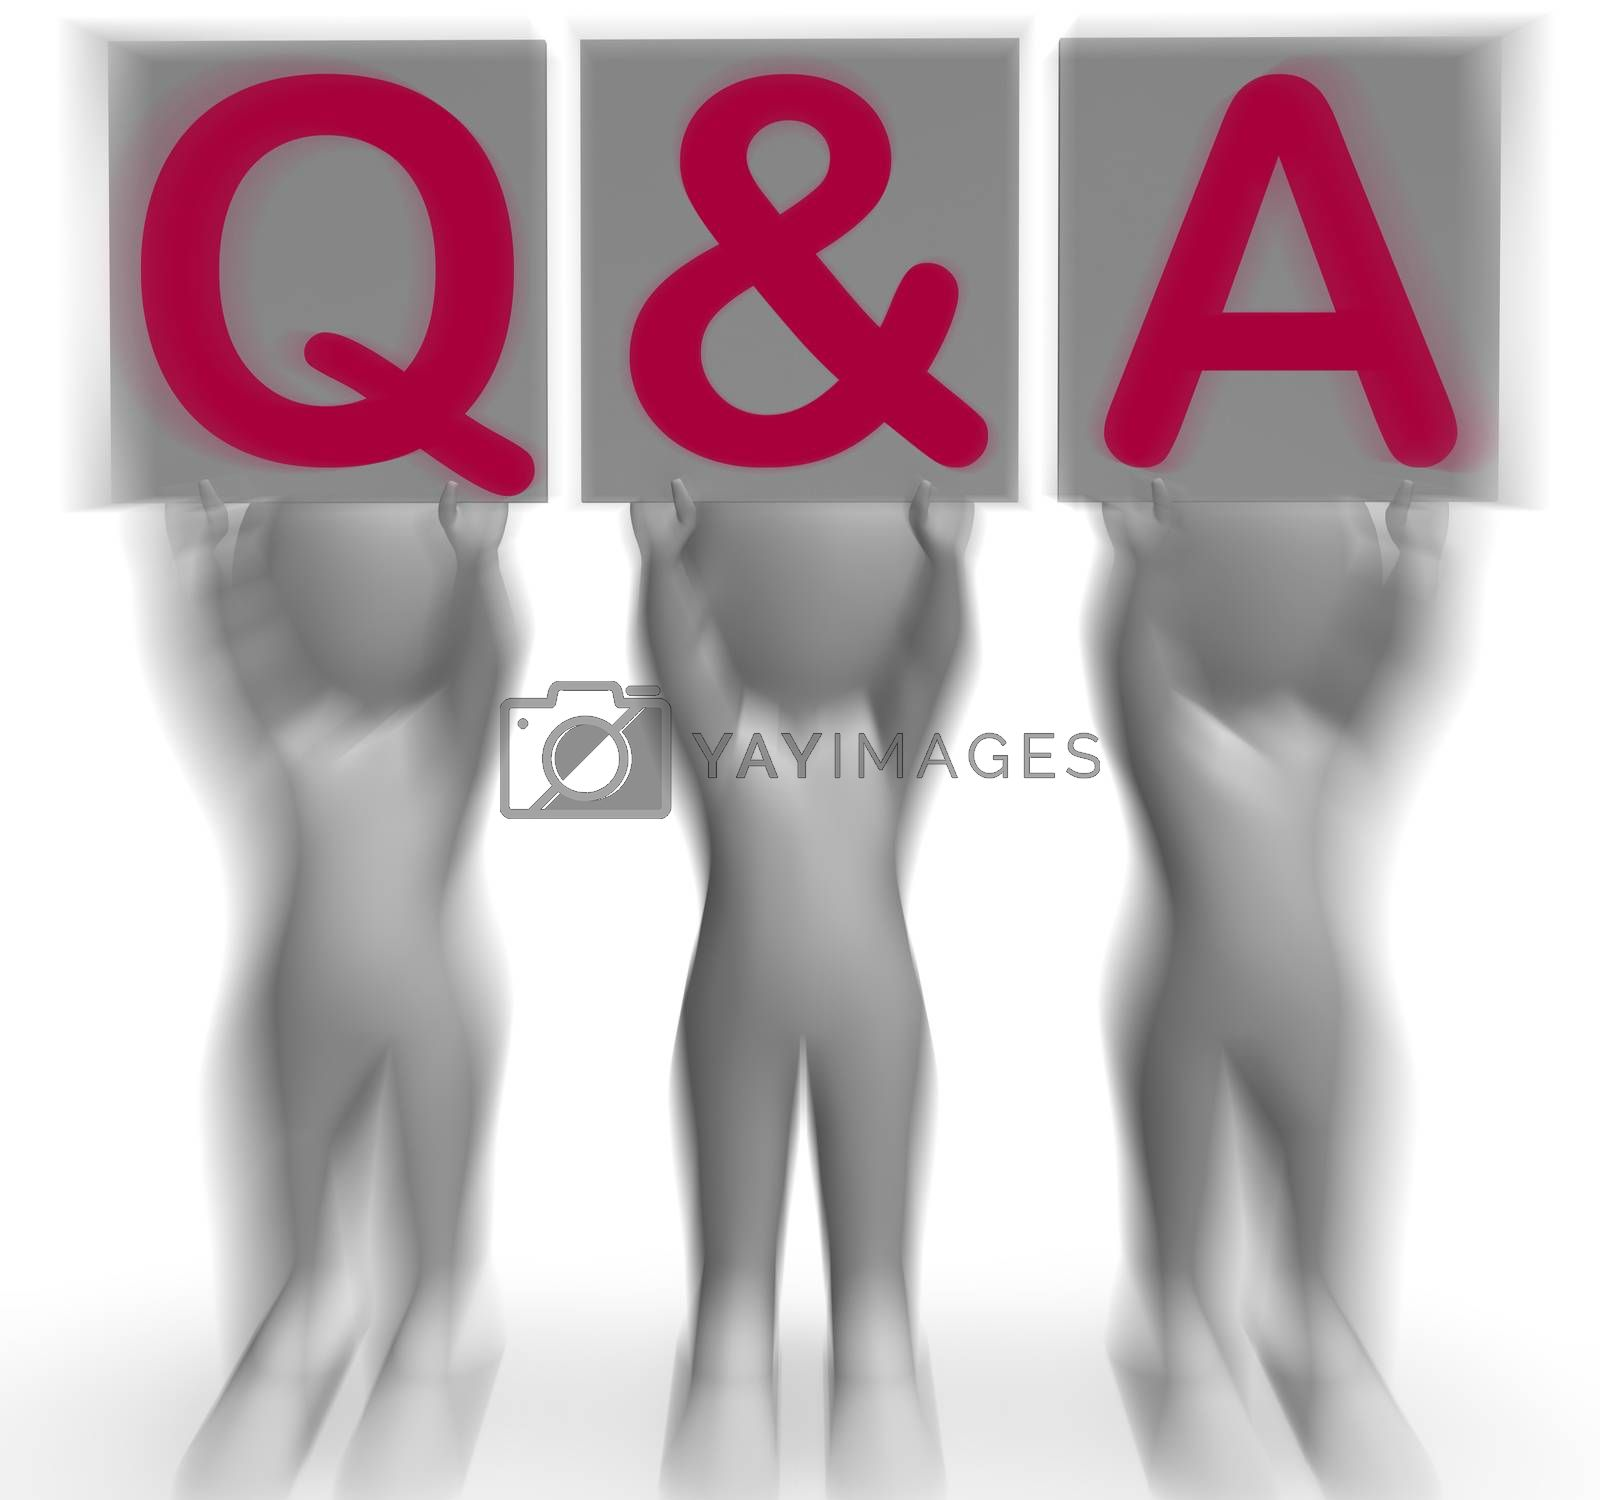 Q&A Placards Shows Online Support And Assistance by stuartmiles